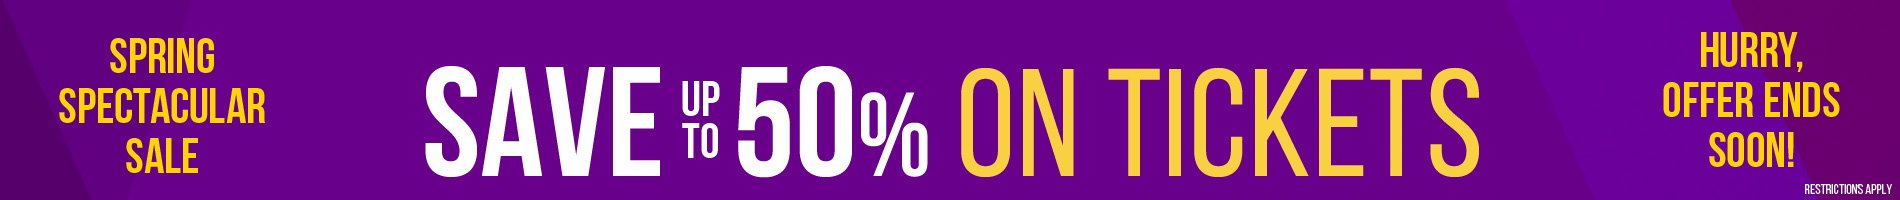 Spring Spectacular Sale. Save up to 50% on tickets. Hurry offer ends soon